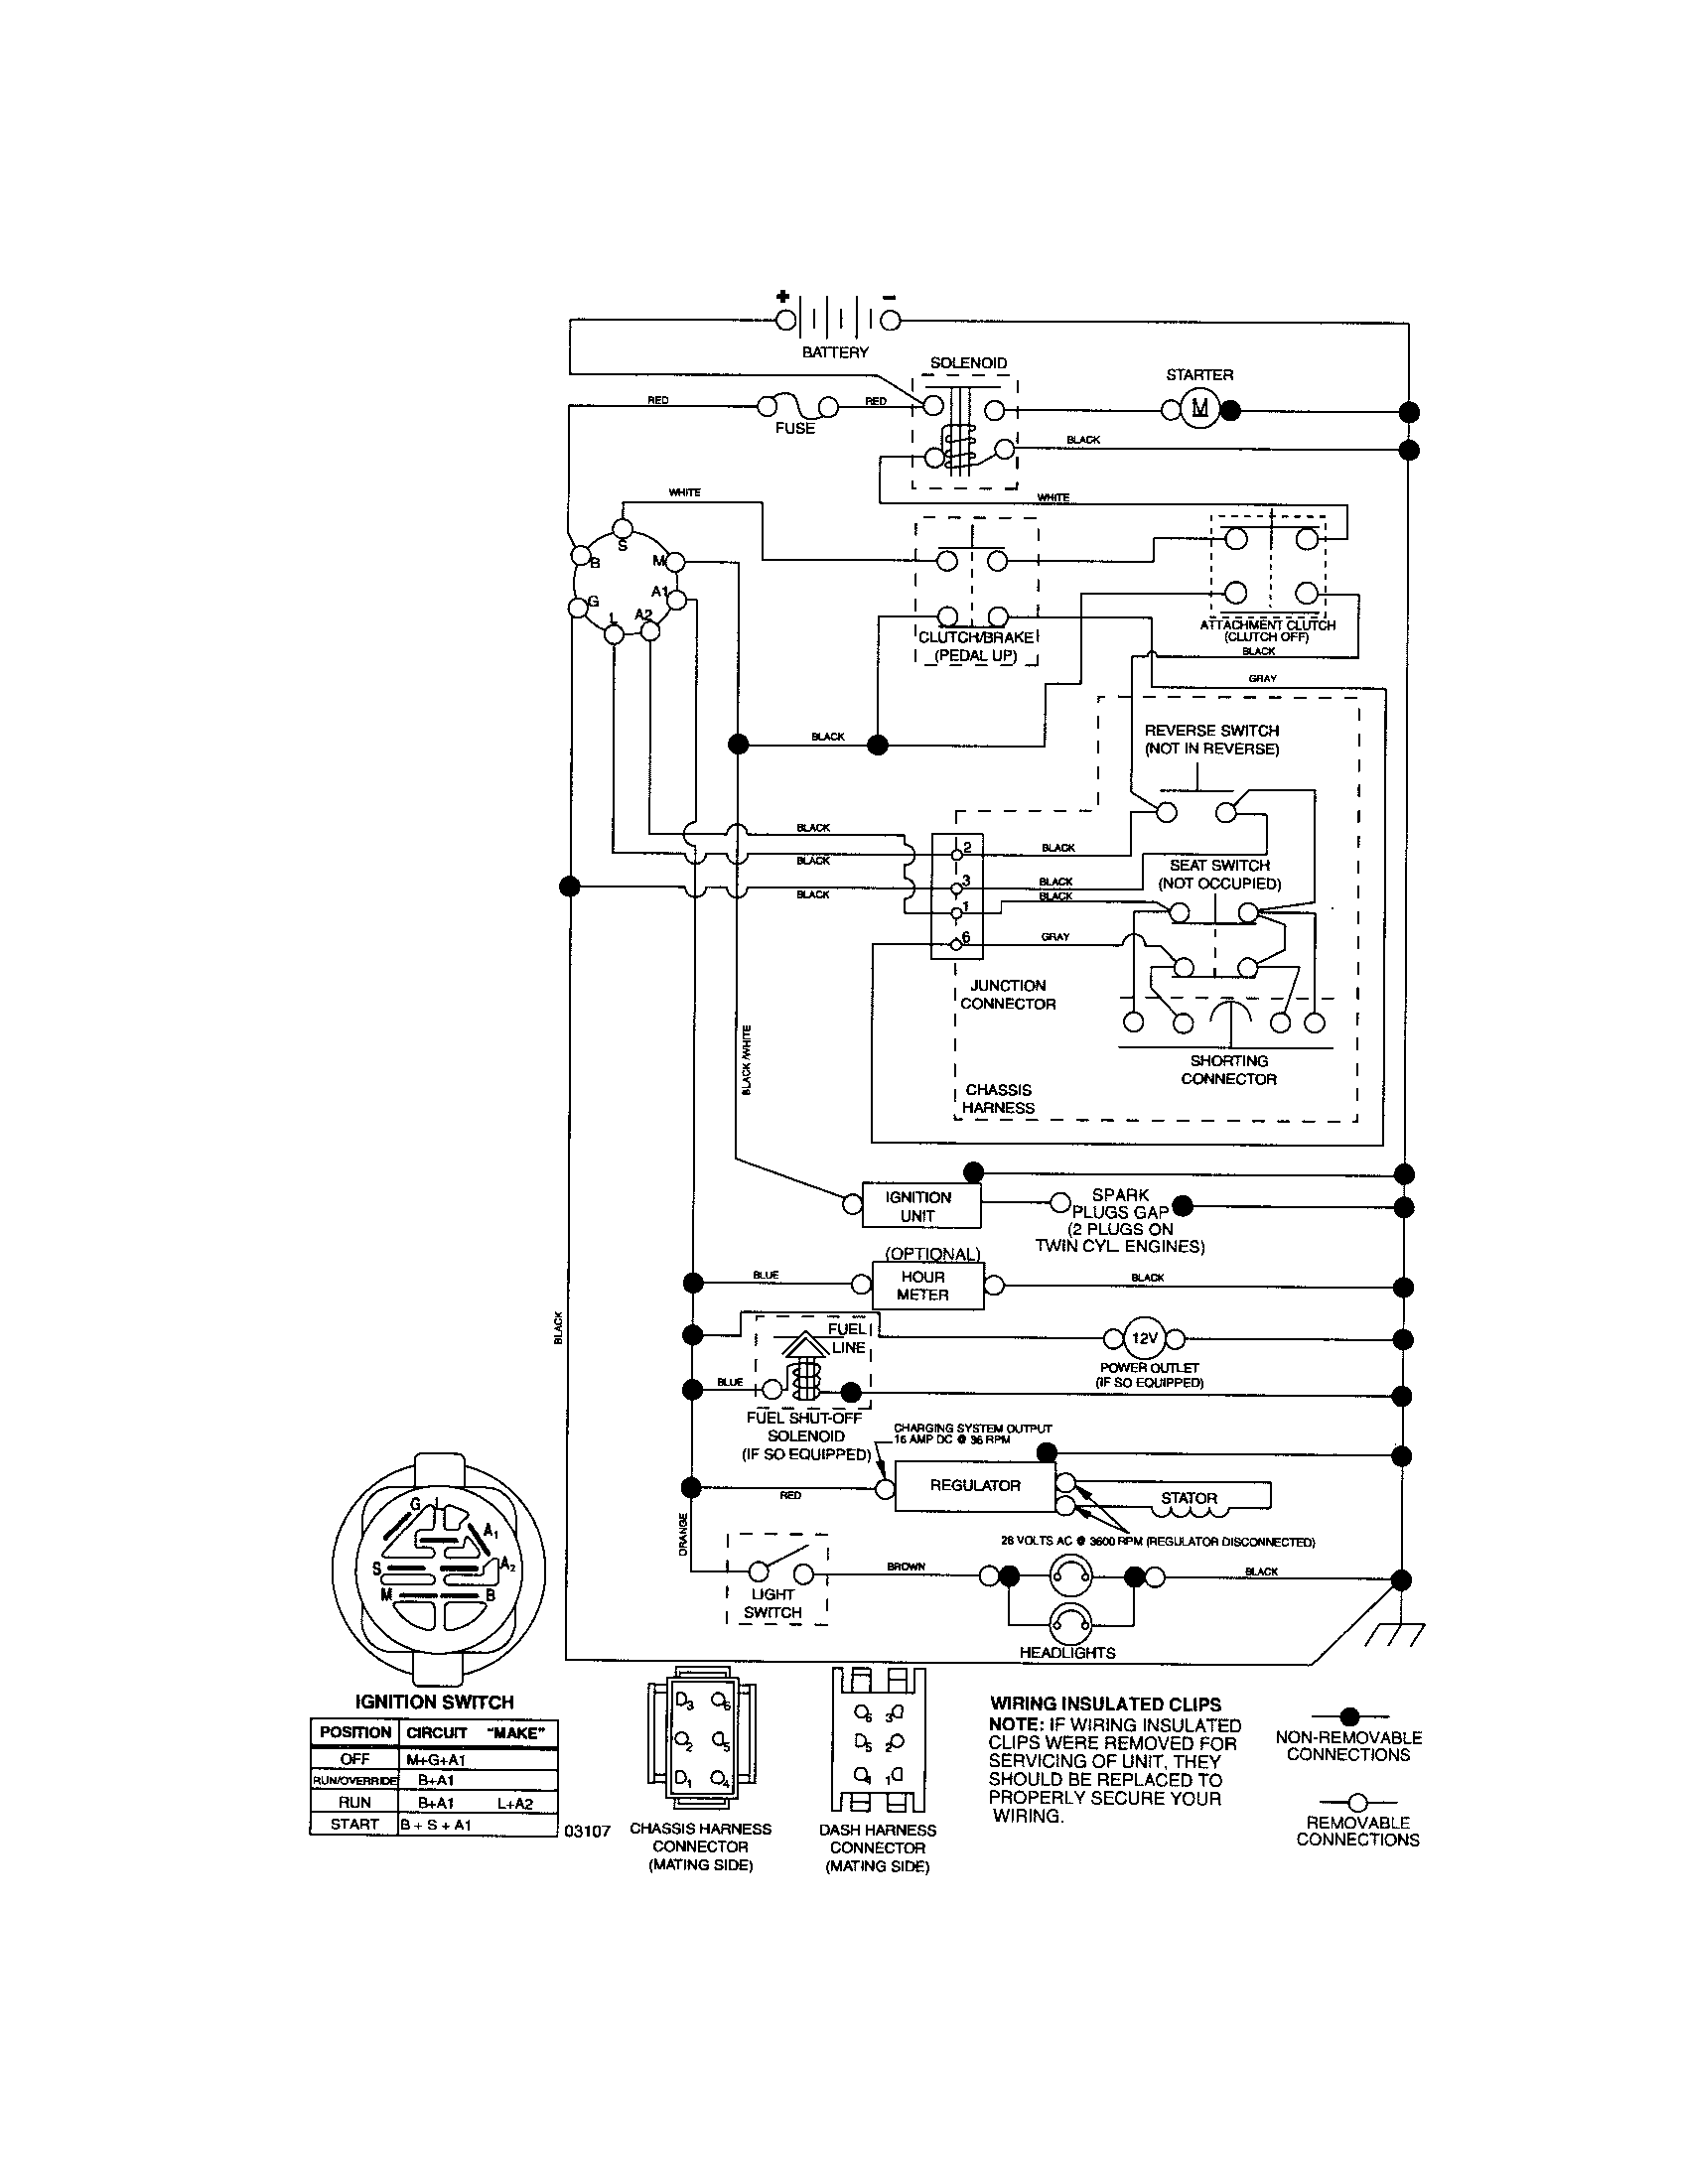 hight resolution of sears wiring diagram wiring diagram hub garage door opener wiring craftsman model 917287261 lawn tractor